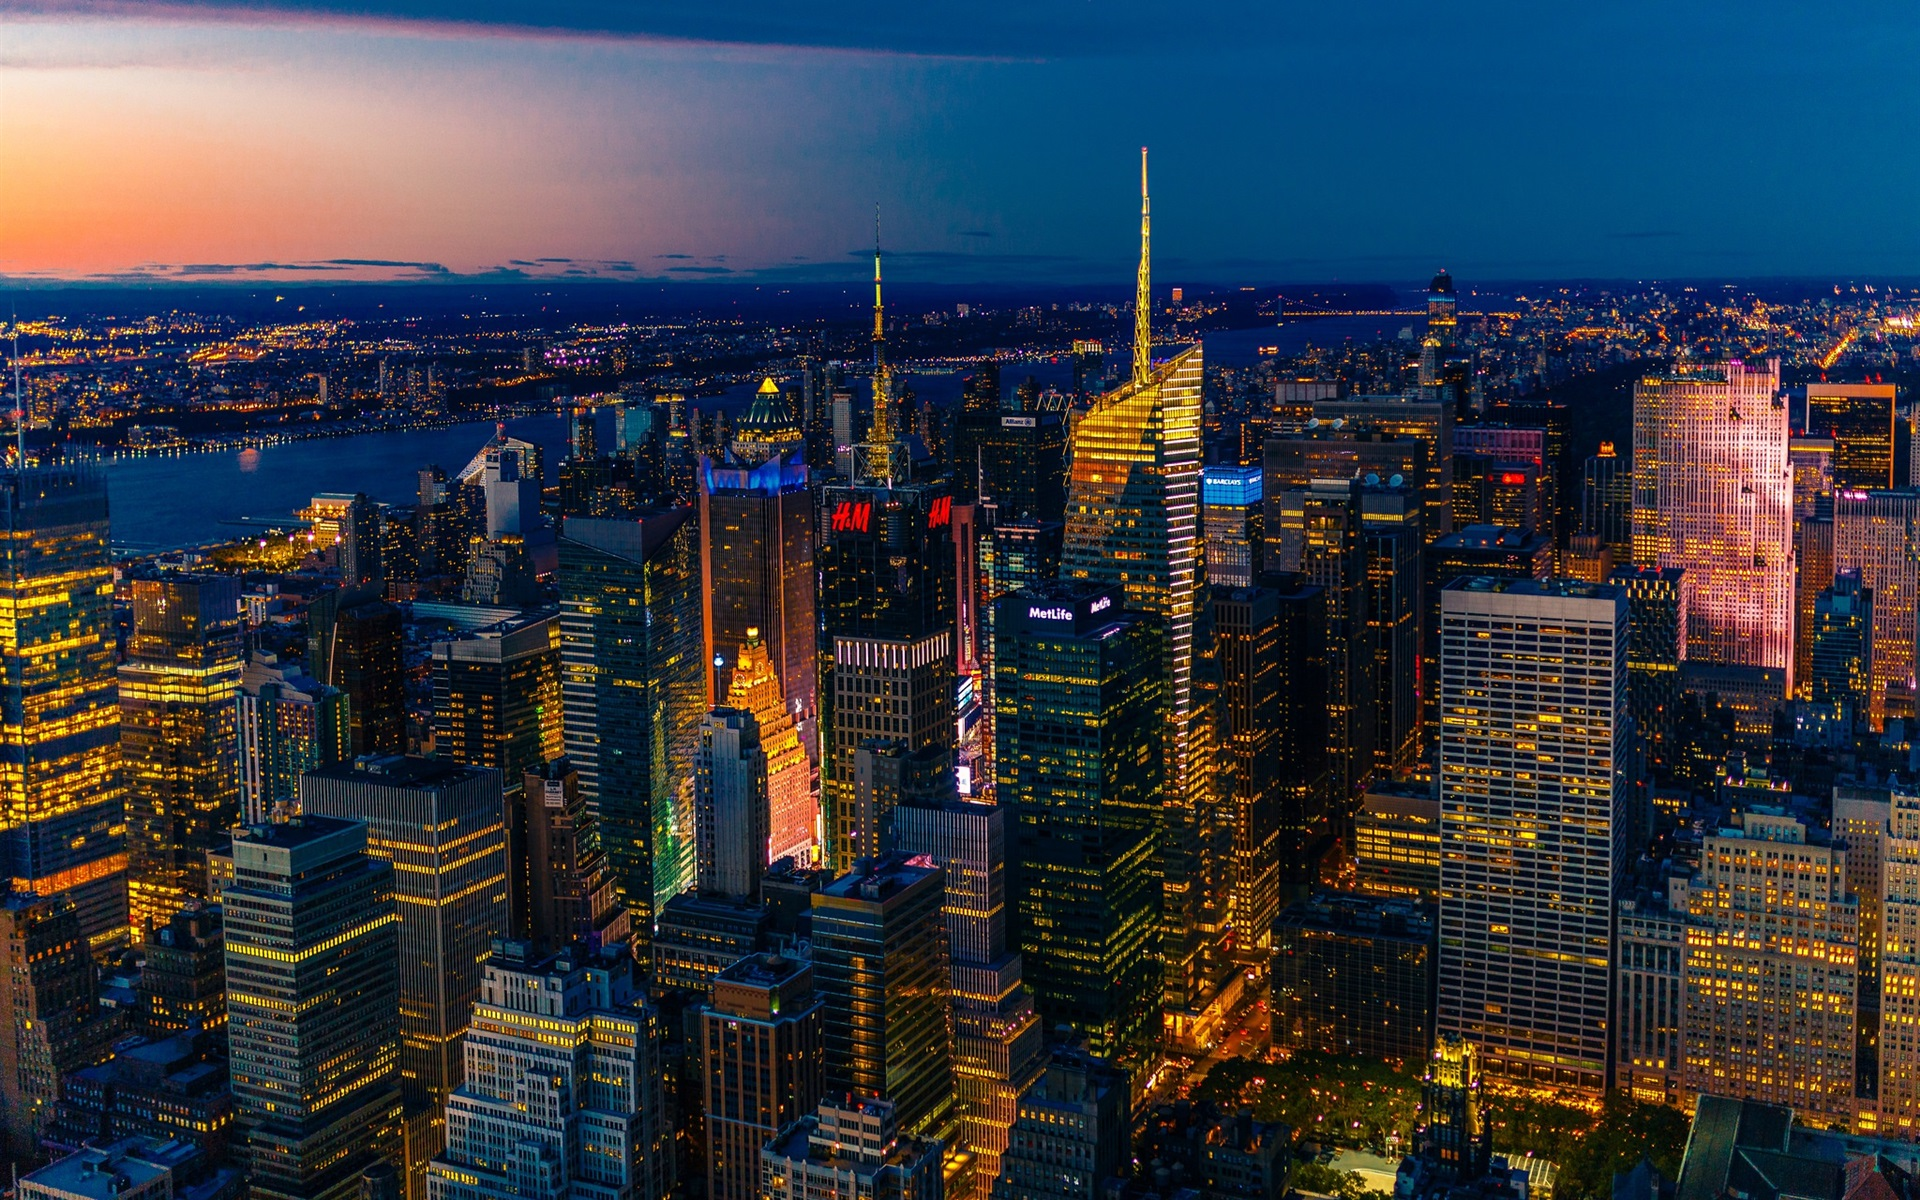 Wallpaper New York Night View Panorama Skyscrapers Lights Usa 1920x1200 Hd Picture Image